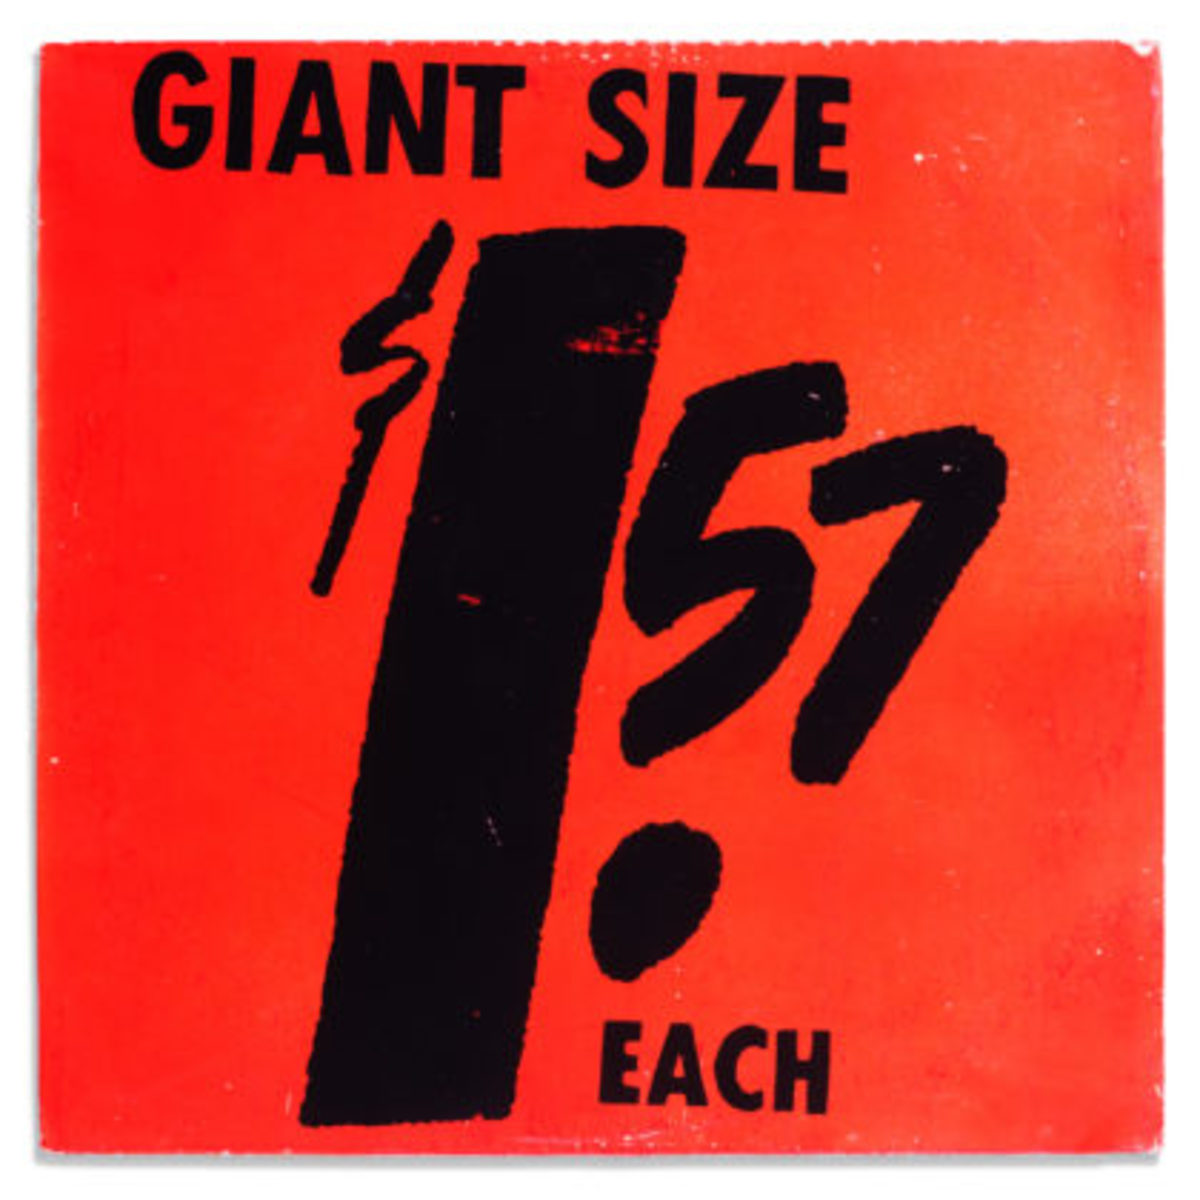 ANDY WARHOL, Giant Size $1.57 Each [Interviews with Artists Participating in The Popular Image exhibition at The Washington Gallery of Modern Art], 1963record album